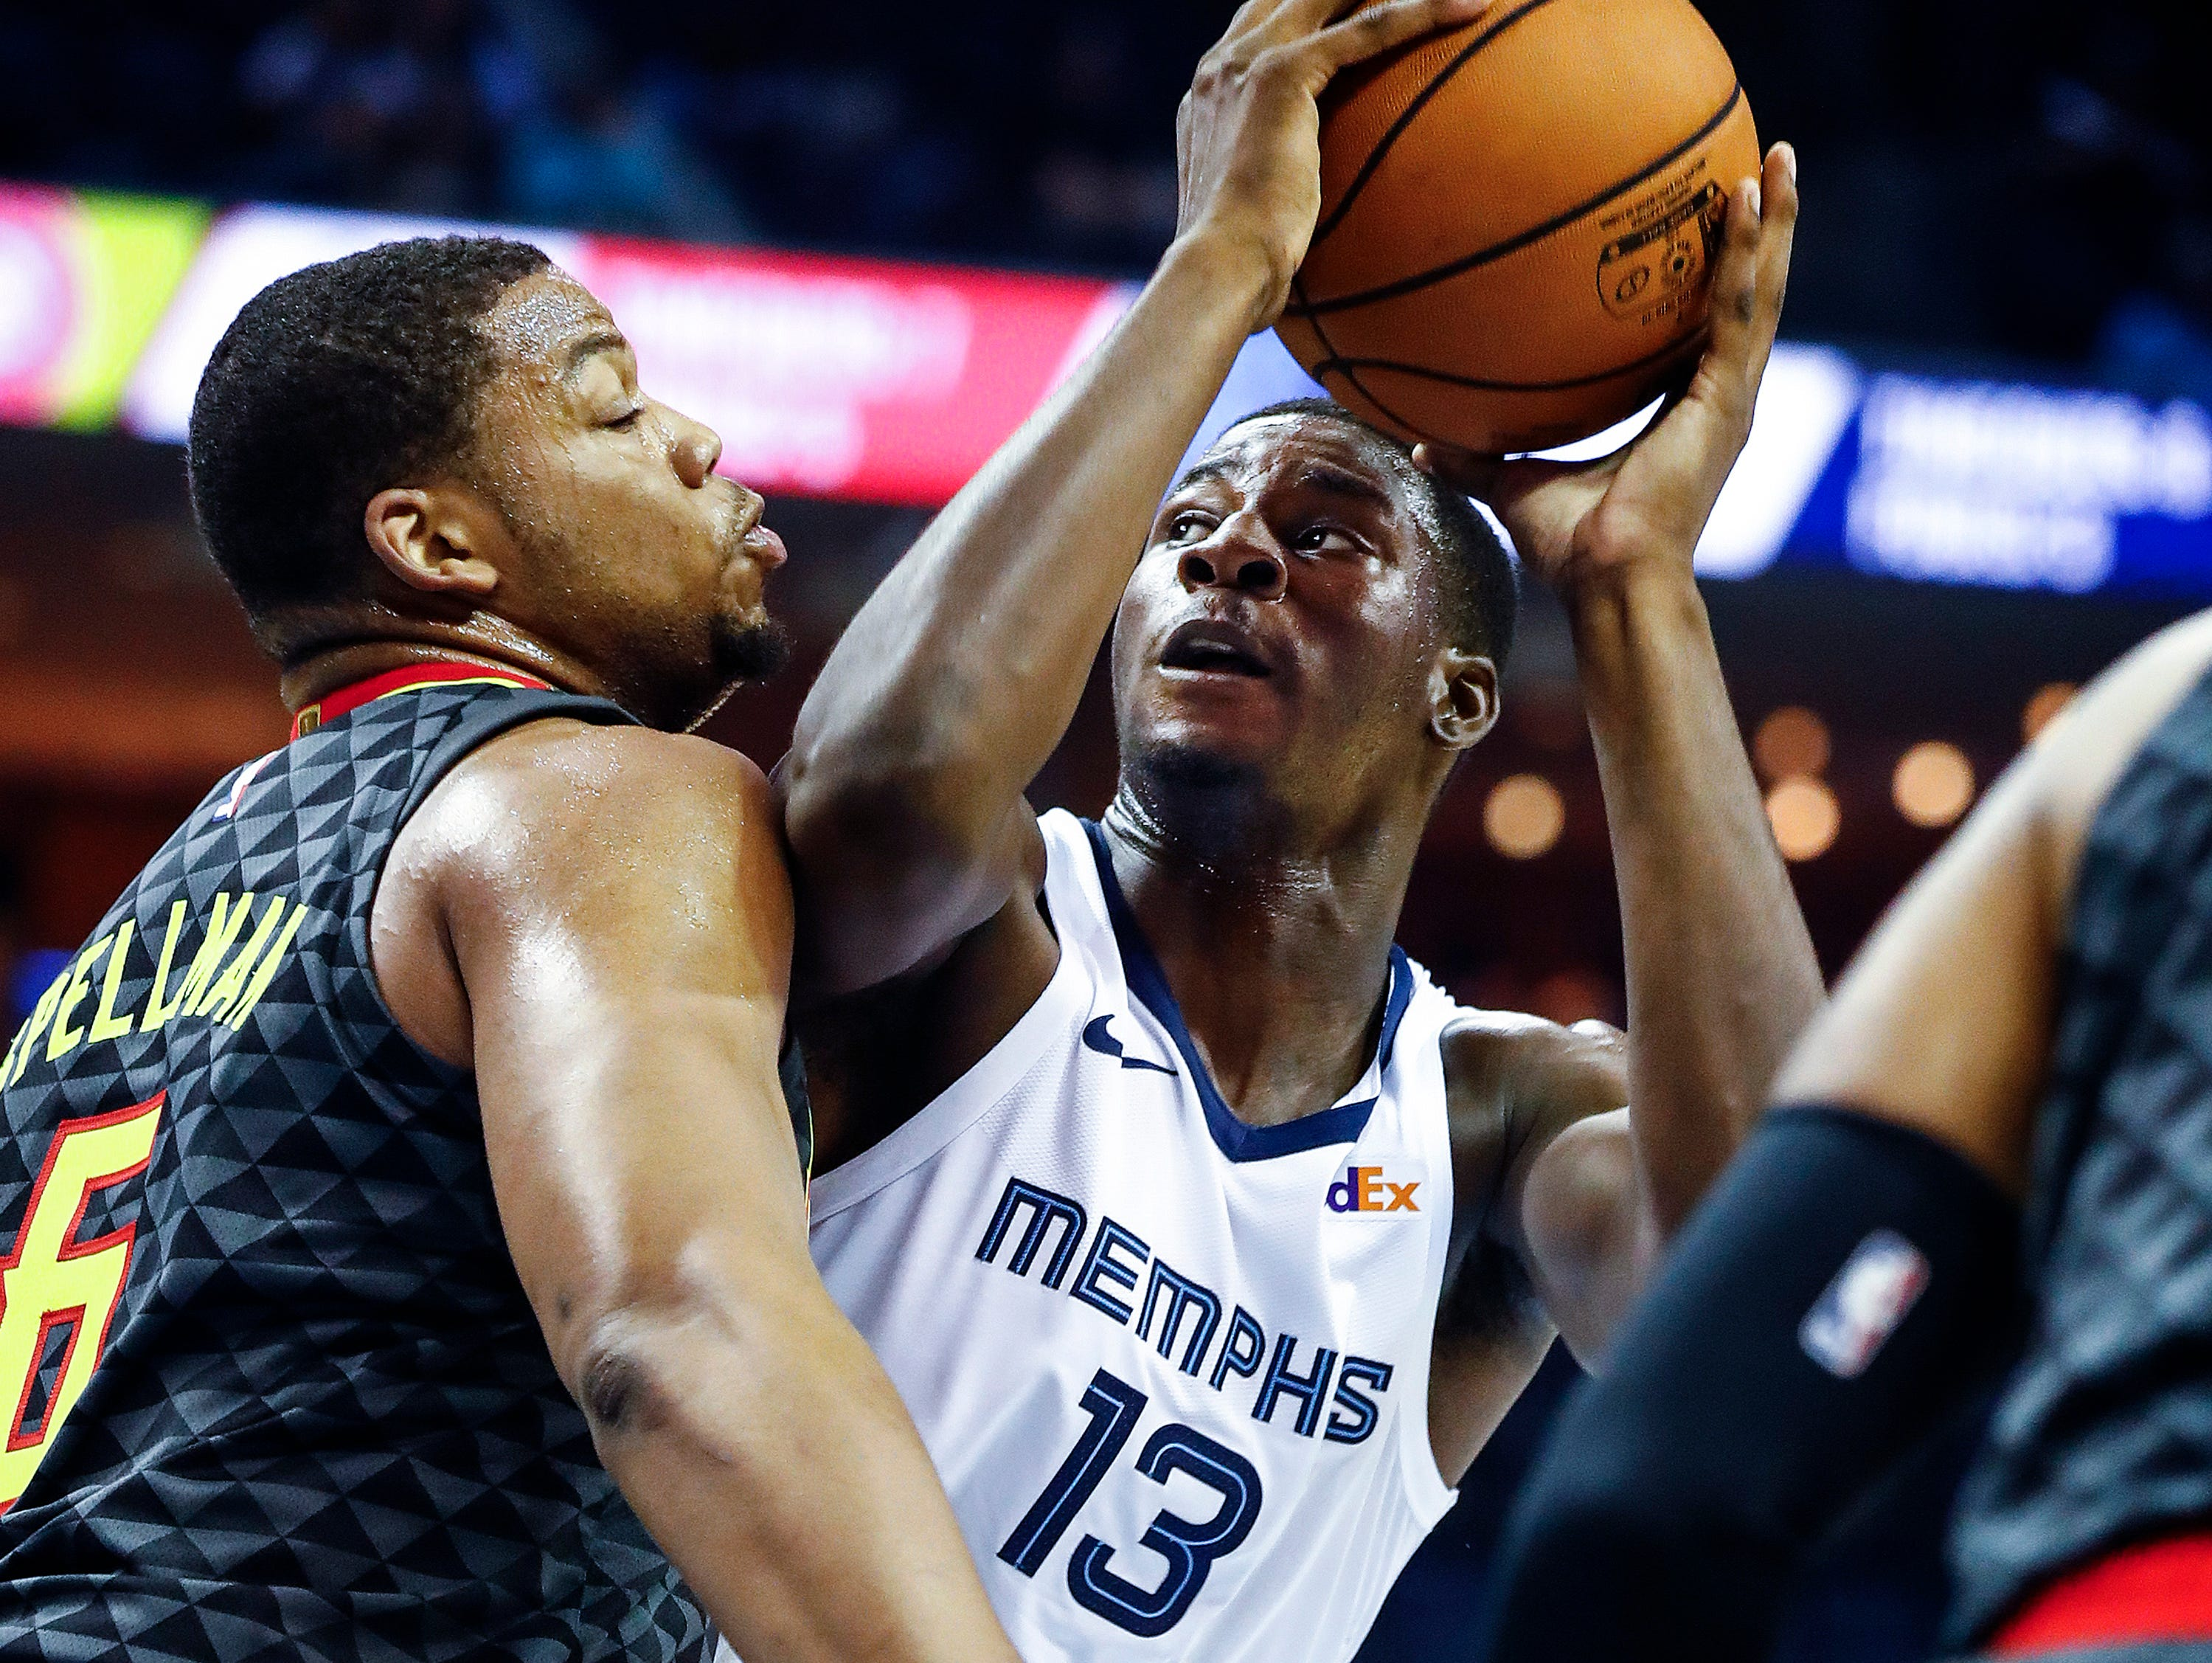 Memphis Grizzlies rookie Jaren Jackson Jr. (right) drives the lane against Atlanta Hawks defender Omari Spellman (left) during first quarter action at the FedExForum in Memphis, Tenn., Friday, October 5, 2018.